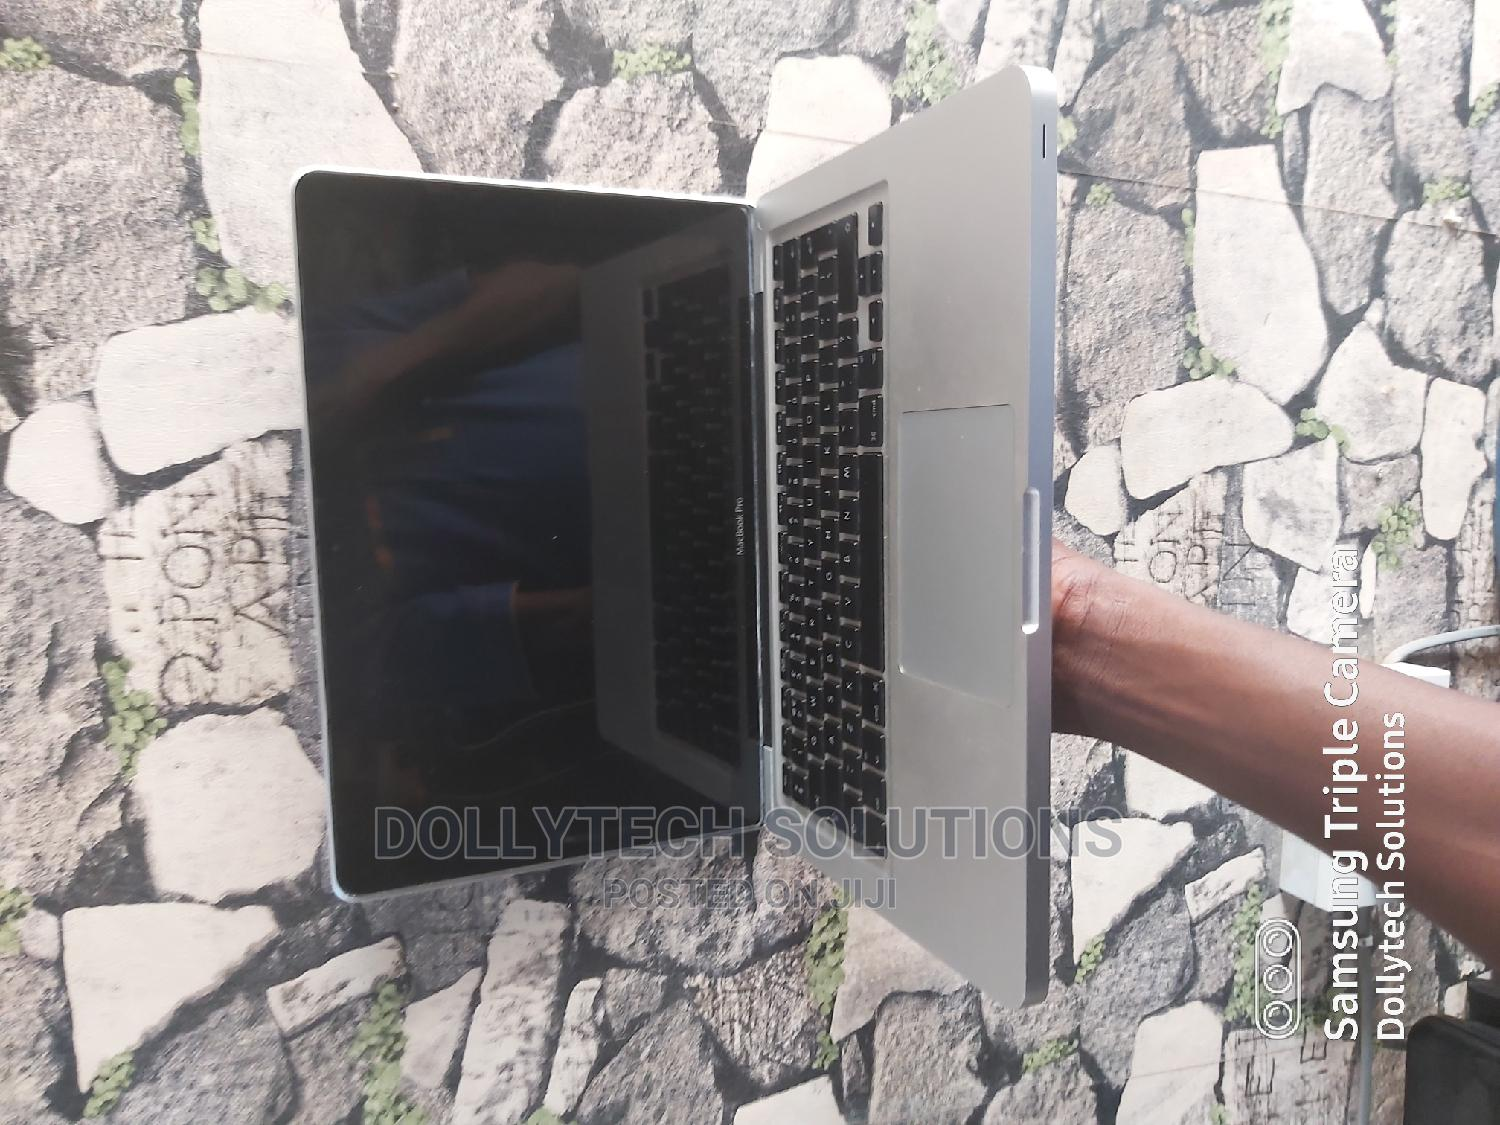 Laptop Apple MacBook 2012 8GB Intel Core I5 SSD 160GB | Laptops & Computers for sale in Isolo, Lagos State, Nigeria